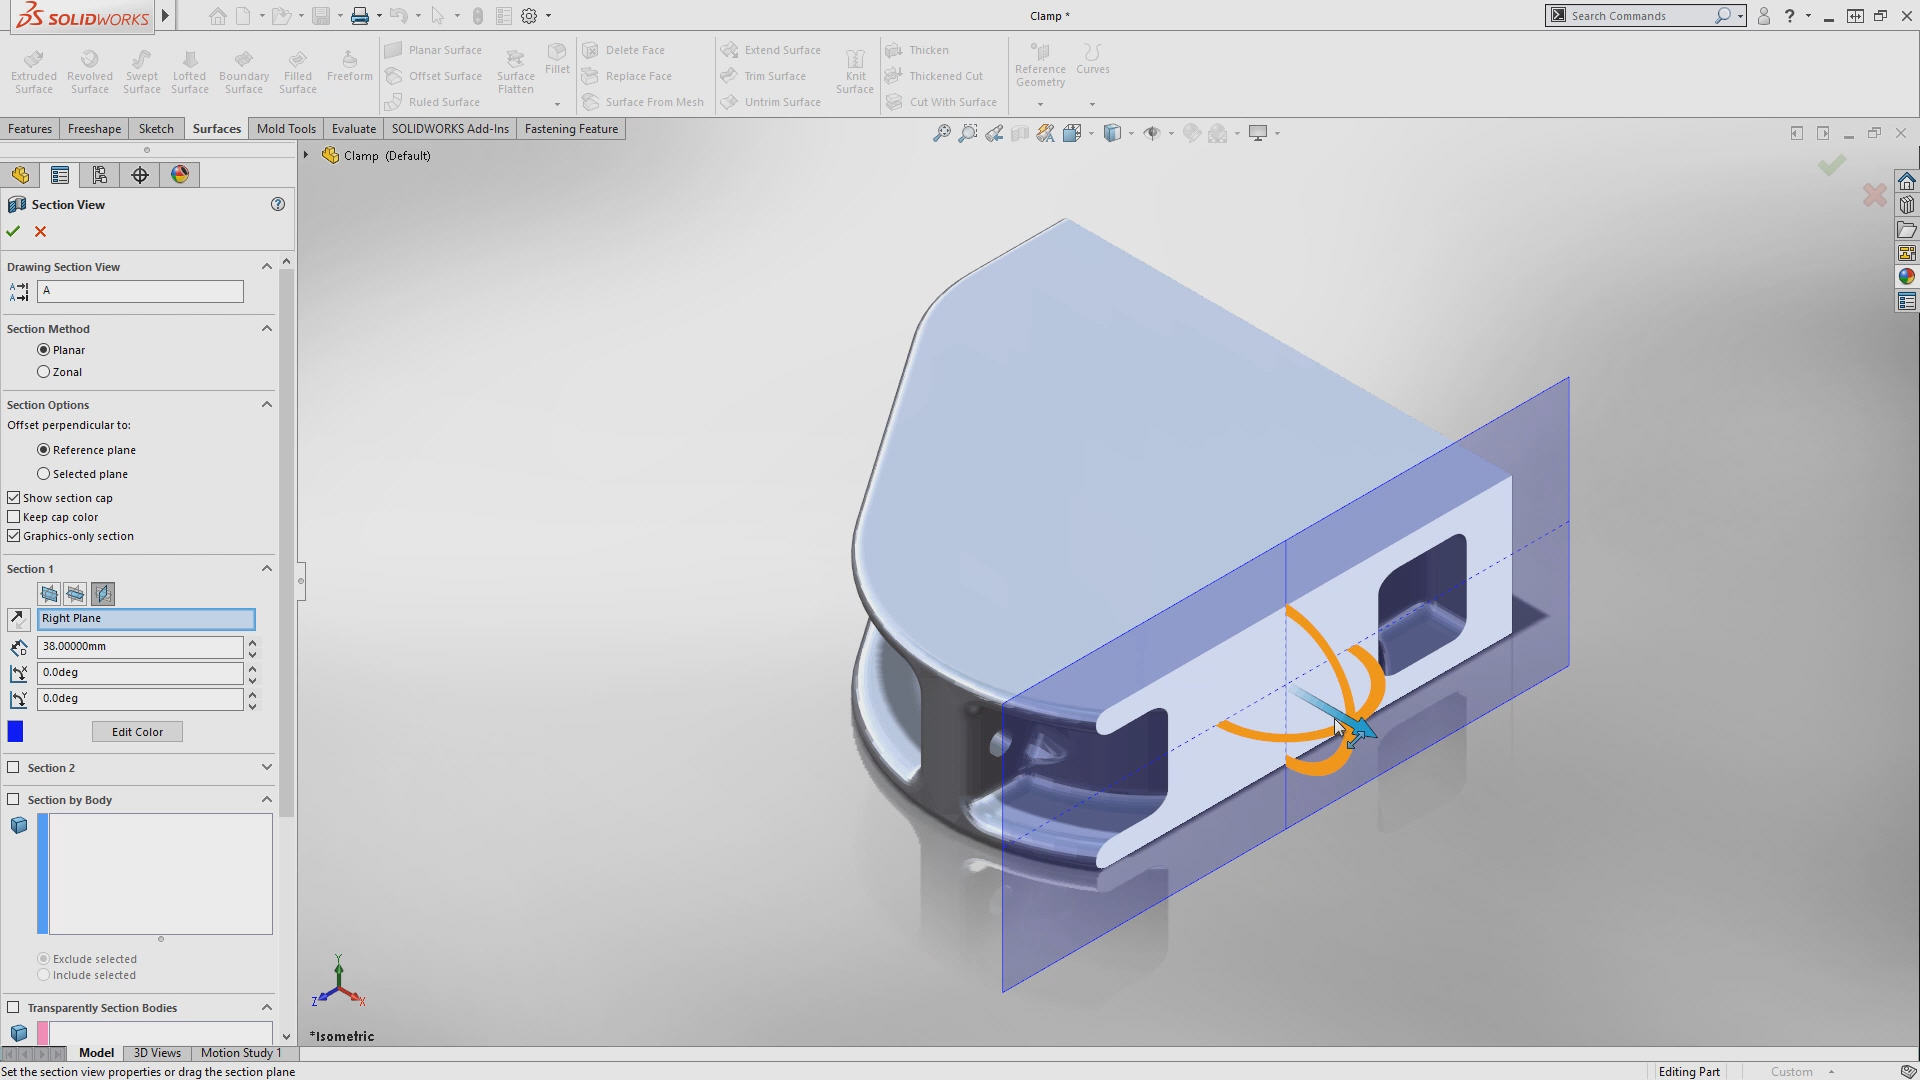 SOLIDWORKS 2018 Hardware FAQs and Recommendations